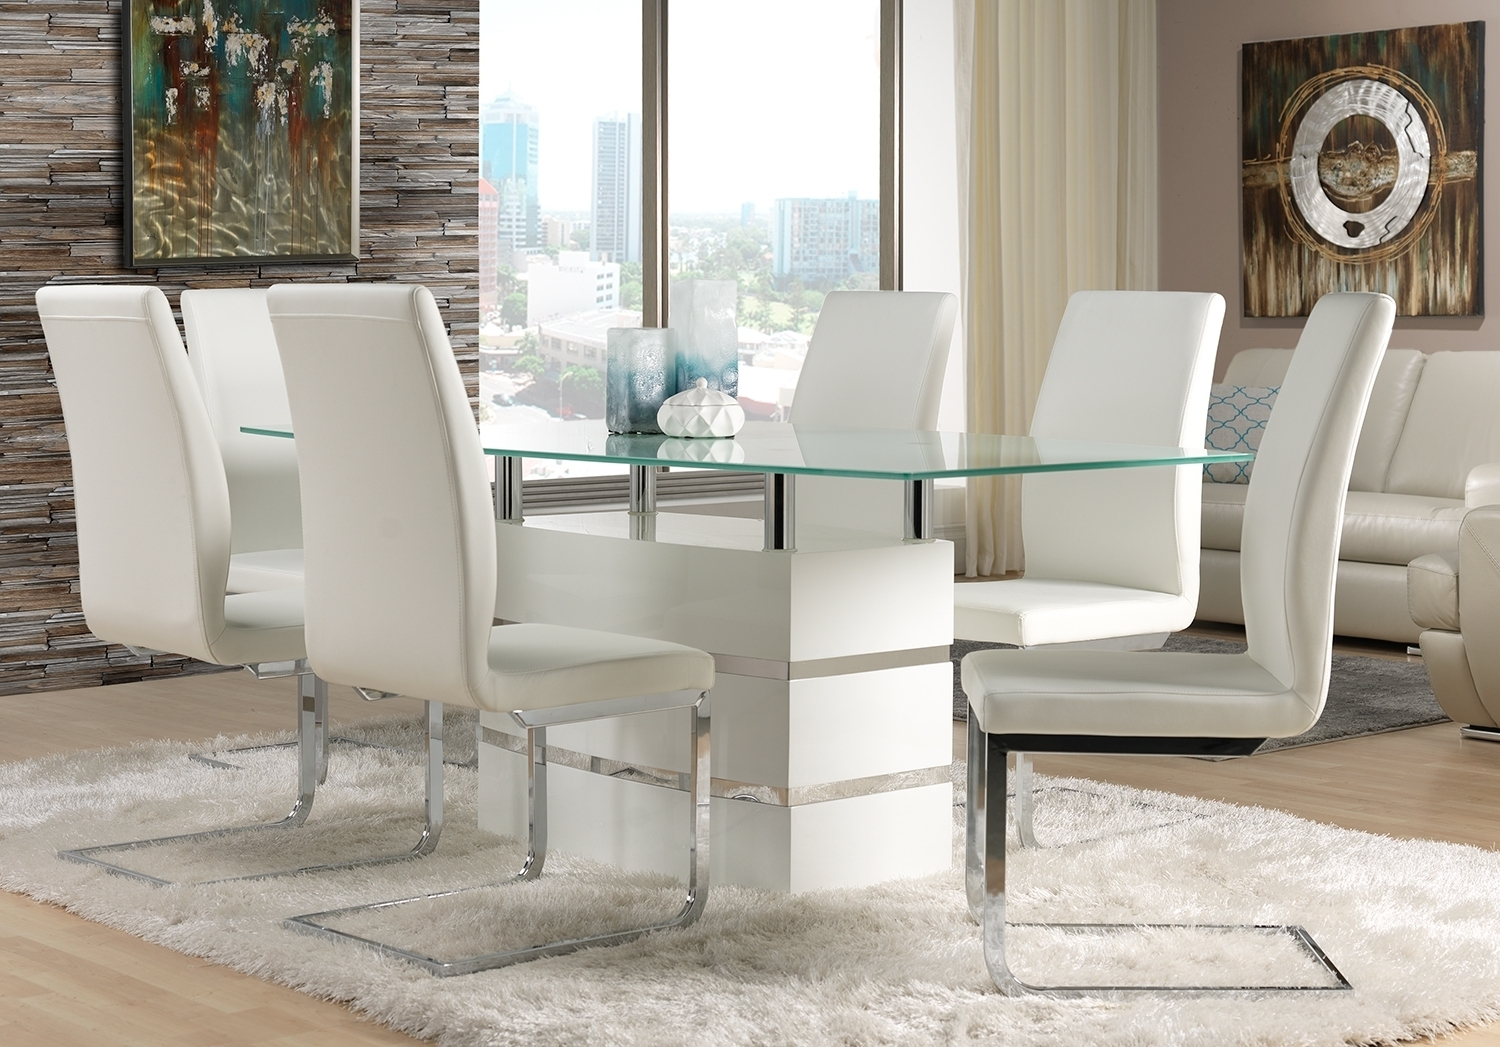 Chair Fabulous Glass Dining Table And White Leather Dining Chair With Favorite White Glass Dining Tables And Chairs (View 4 of 25)